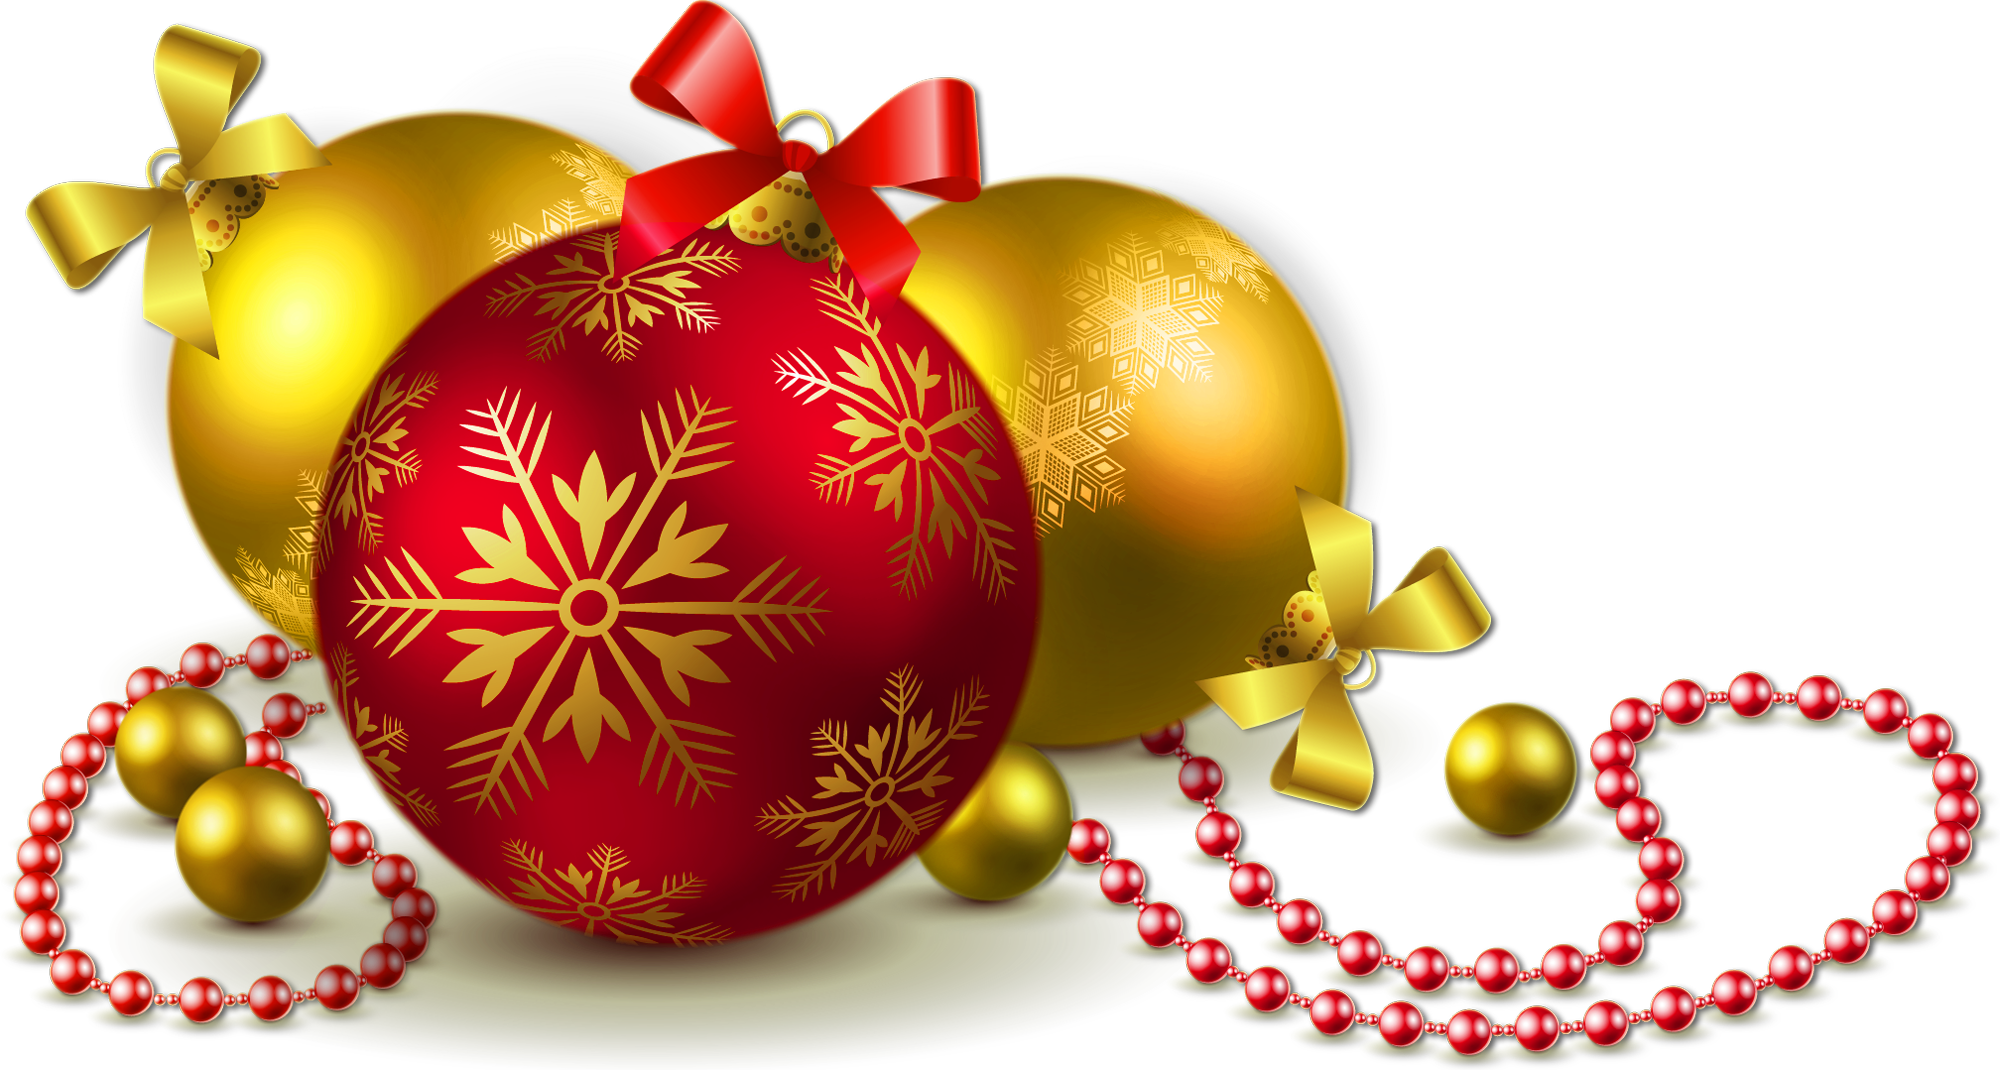 Christmas ornaments large clip art | Christmas wishes ...